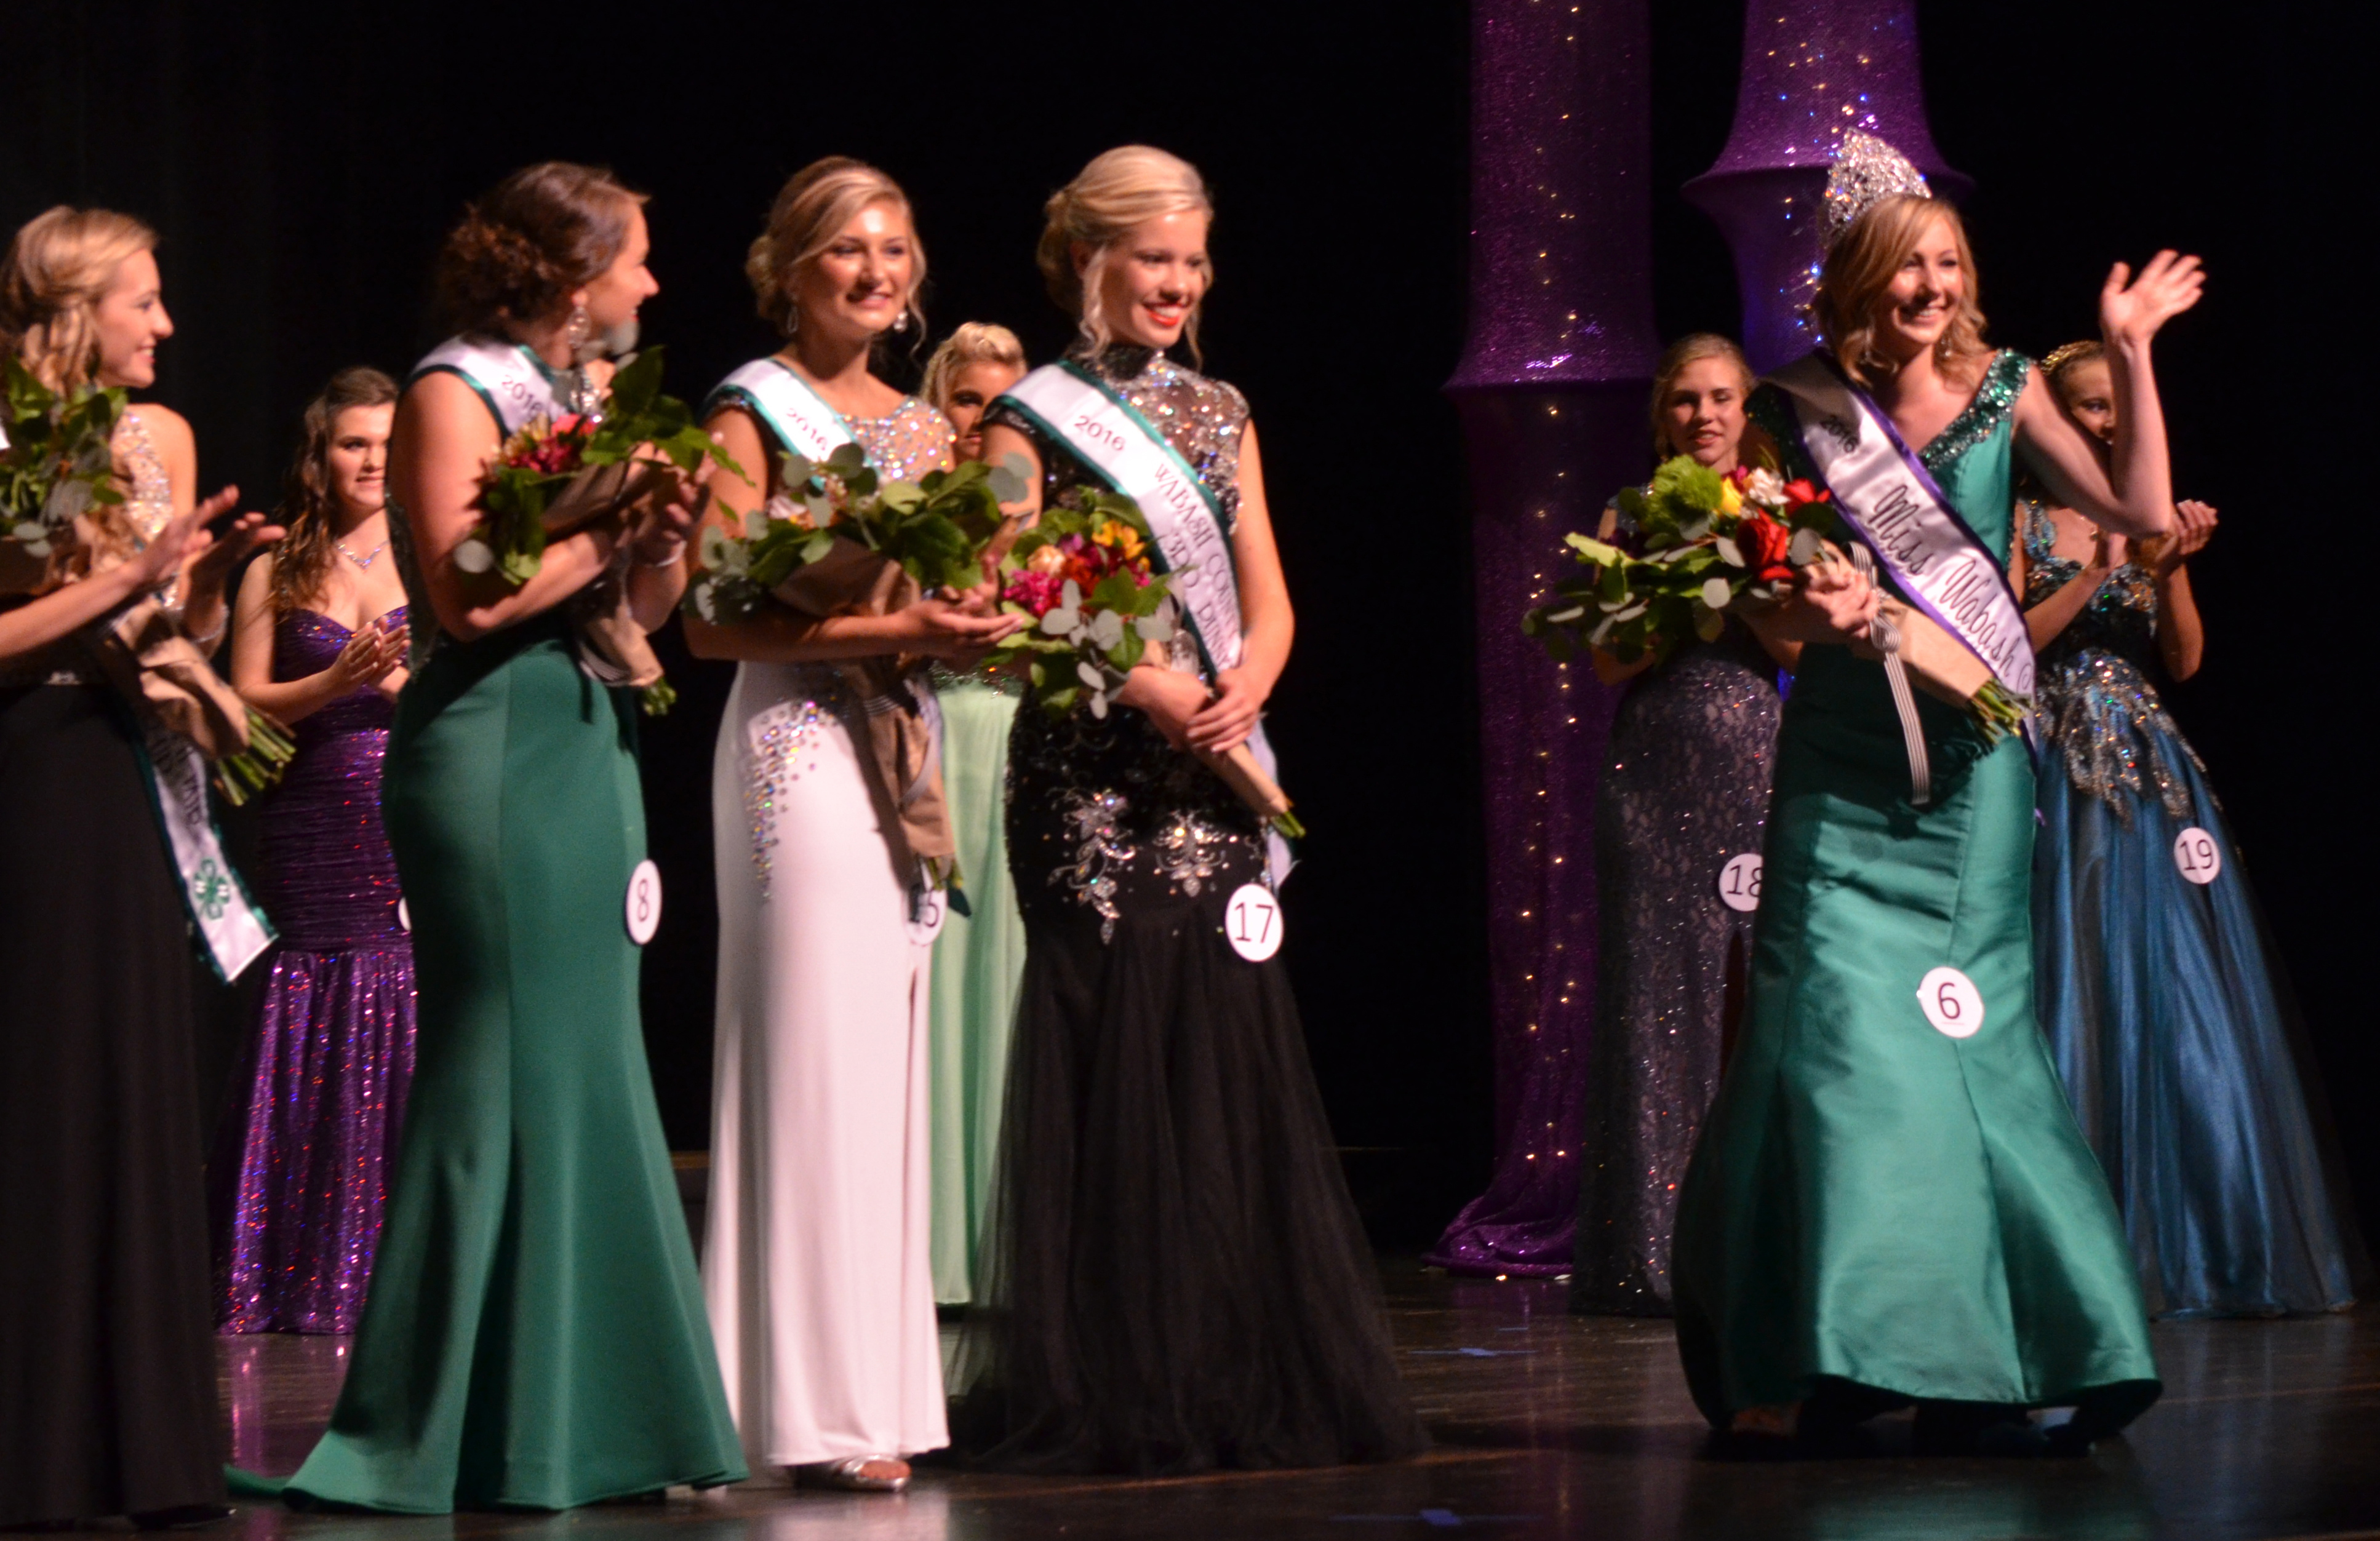 Indiana wabash county lagro - Wabash County 4 H Fair Queen Jordan Michel Waves To The Crowd As Members Of Her Court And Other Contestants Look On Wednesday Night July 6